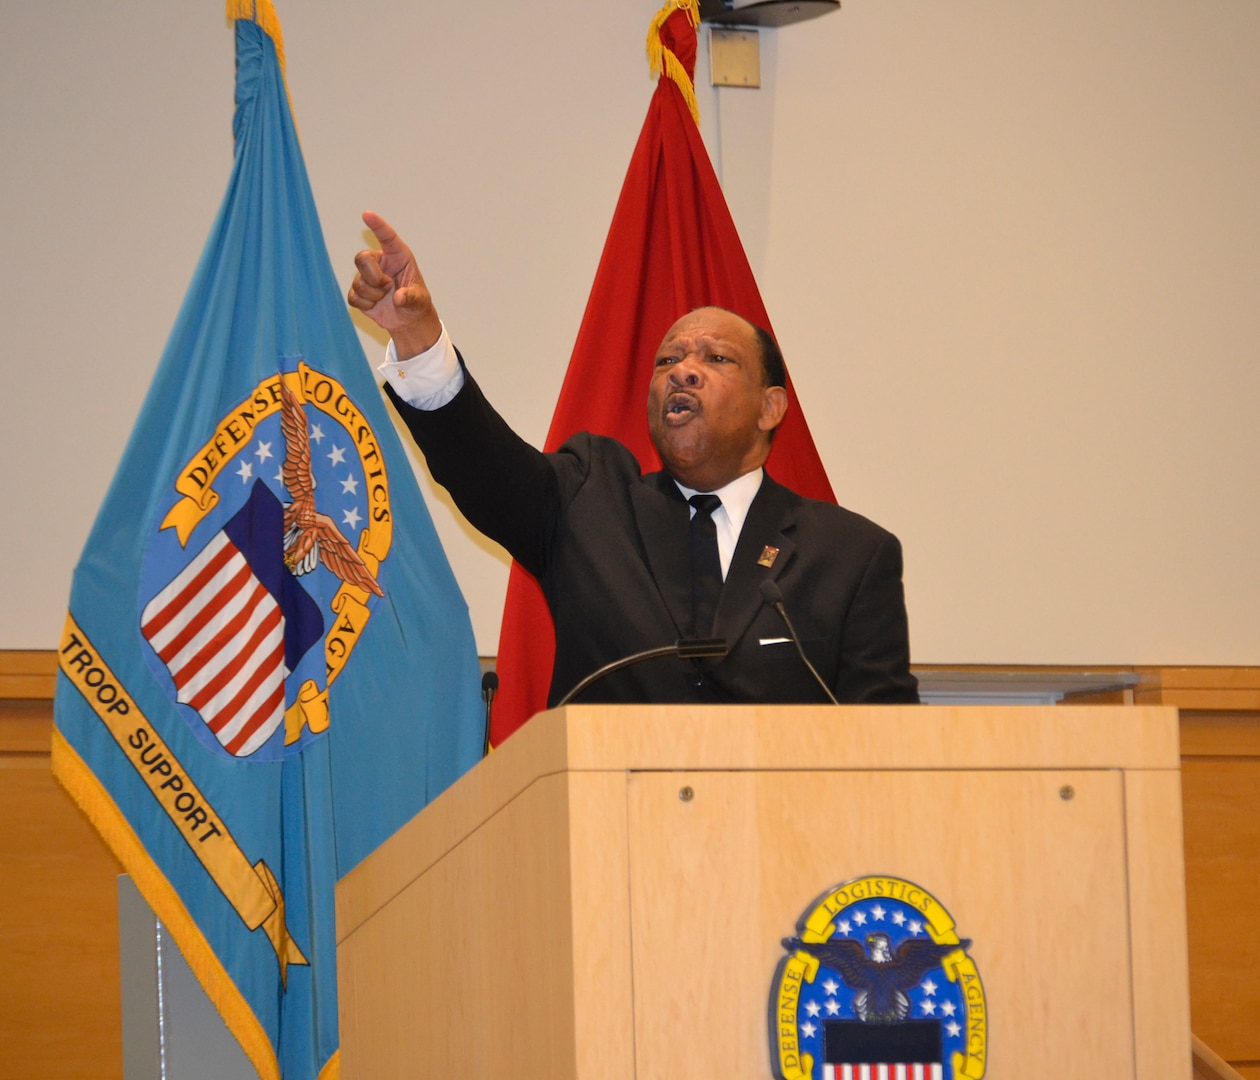 """Jim Lucas recites the """"I Have A Dream"""" speech during the DLA Troop Support and the NAVSUP Weapons Systems Support's annual Dr. Martin Luther King, Jr. birthday observance program Jan. 23 in Philadelphia. Lucas has received acclaim across the nation for his dramatizations depicting the life and times of Dr. Martin Luther King, Jr."""